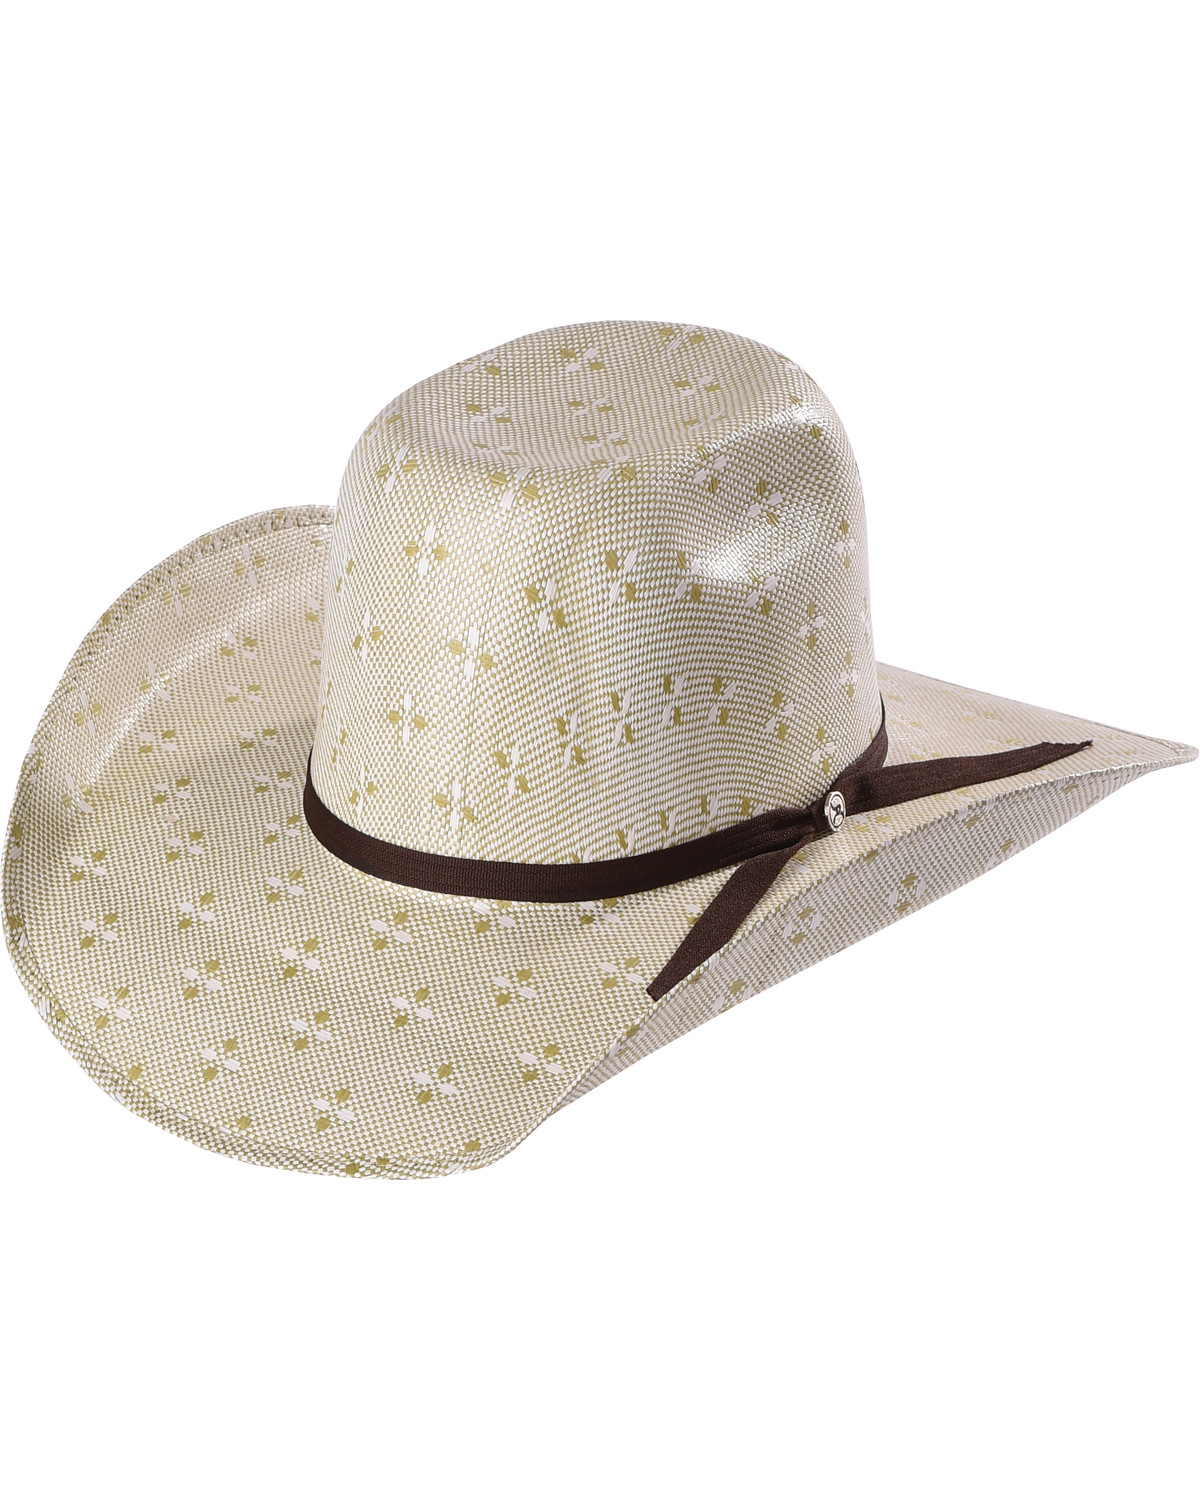 cca8a0a702396 Hooey by Resistol Men s Natural Pecos Straw Cowboy Hat